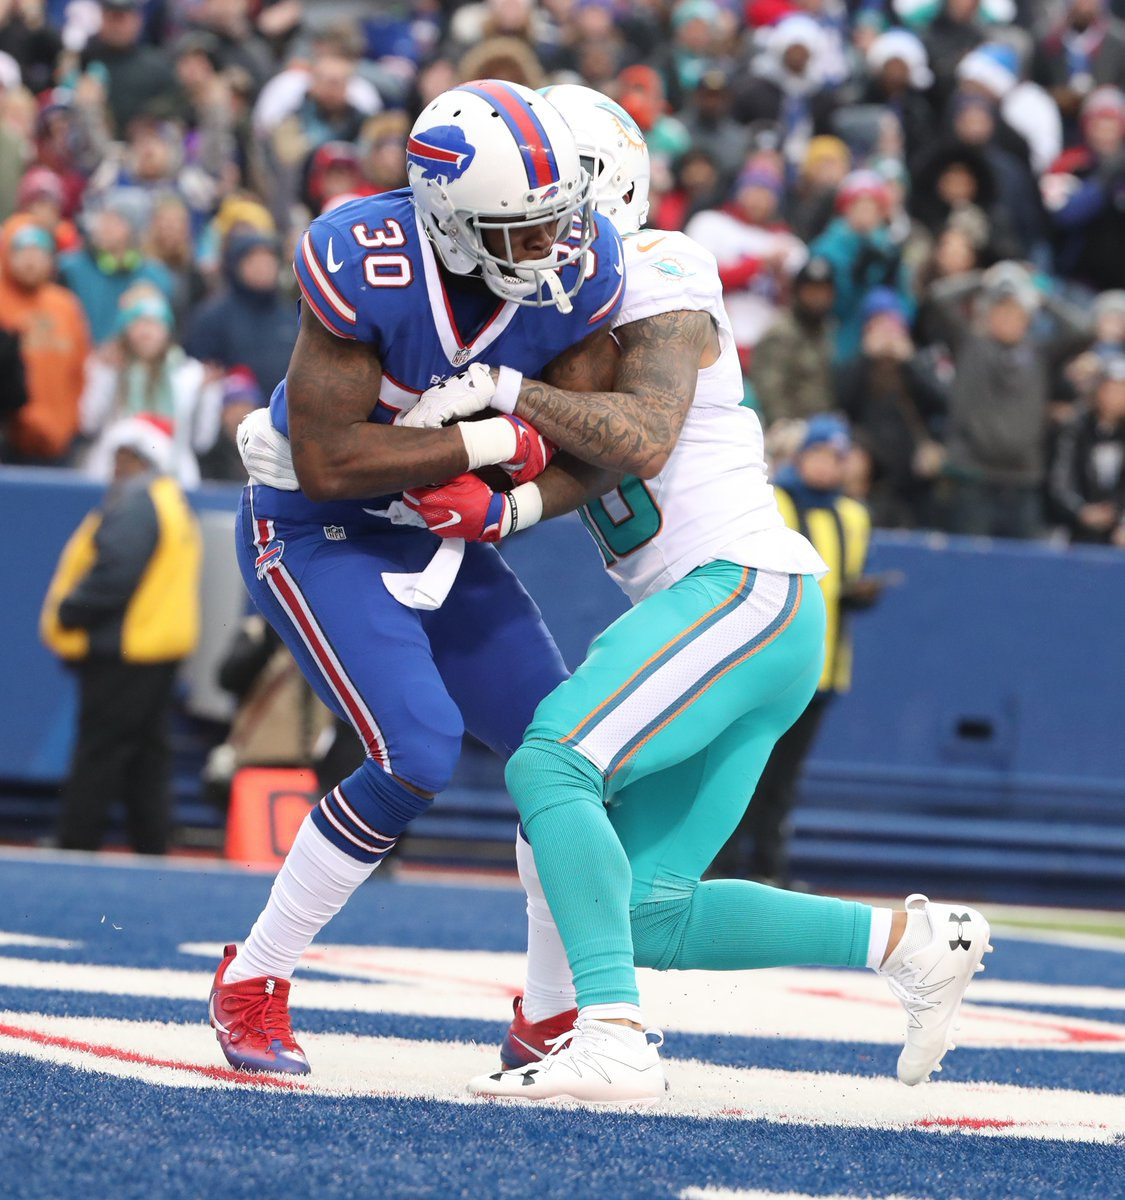 Corey White's interception in the first half was one of very few bright spots for the Bills' defense. (James P. McCoy/Buffalo News)